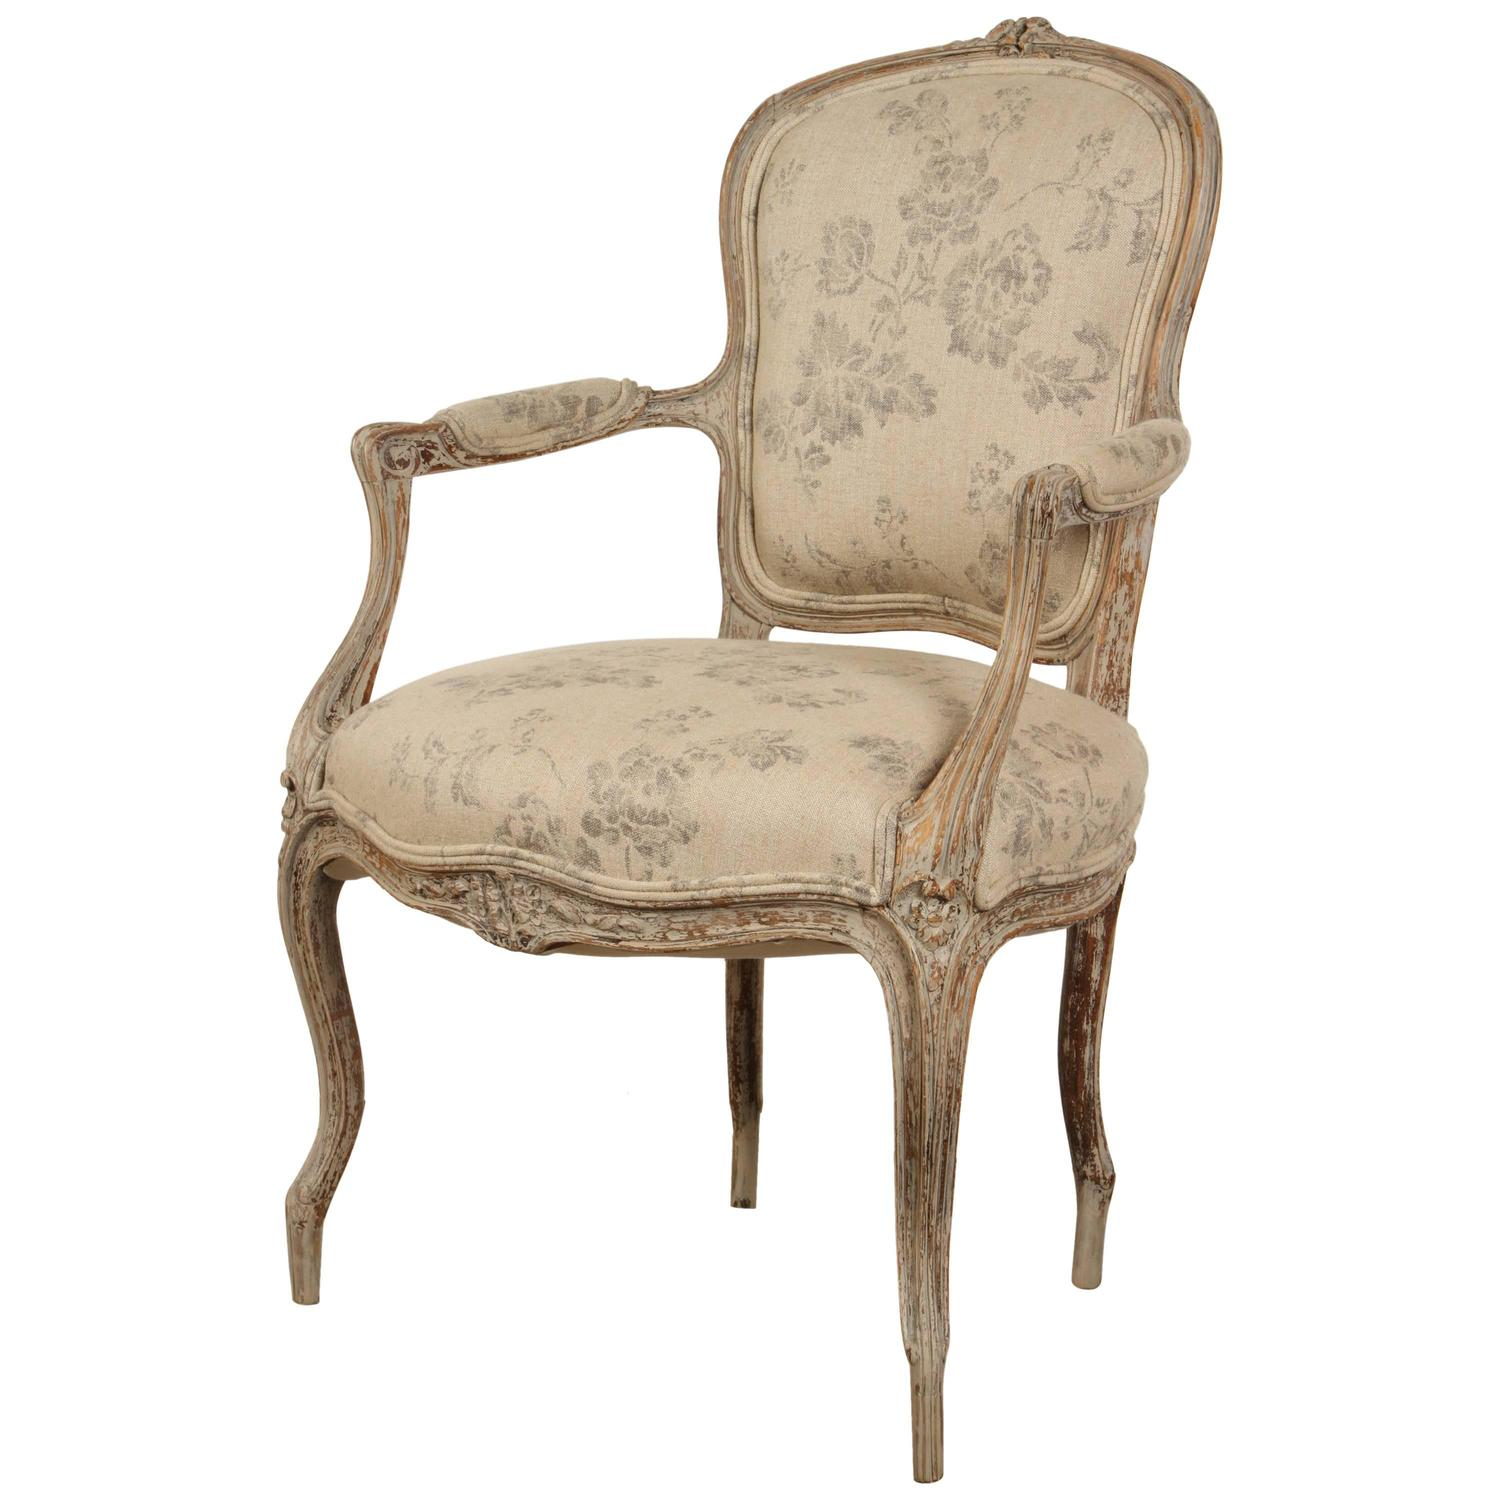 French rococo chair for sale at 1stdibs for French rococo period